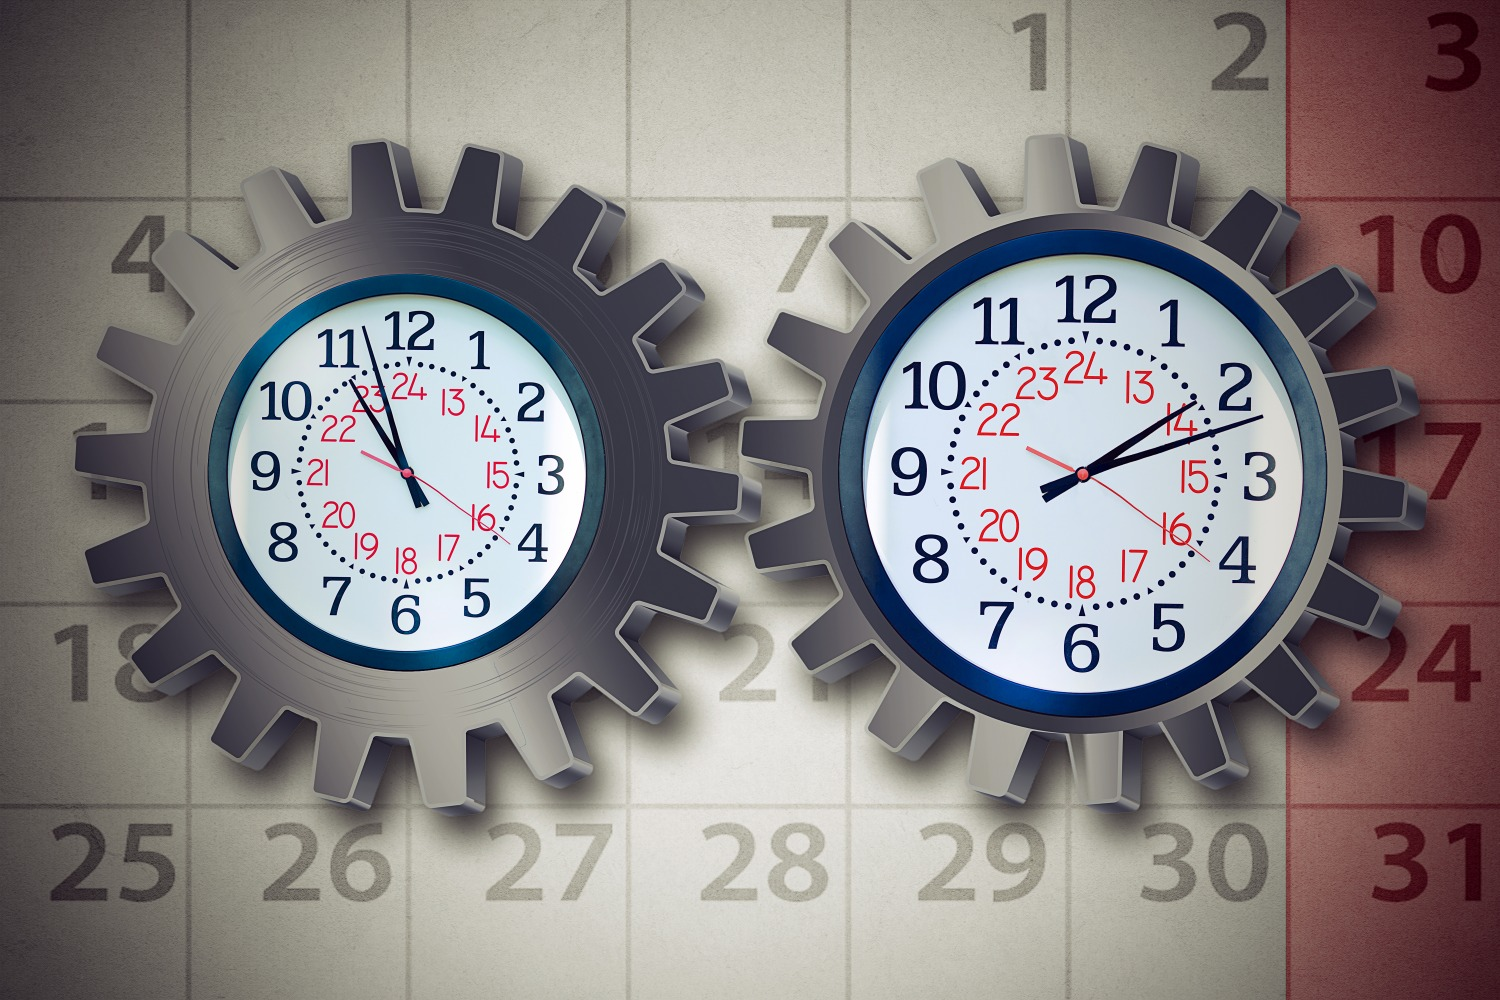 clocks depicting start and end of shift for time and attendance